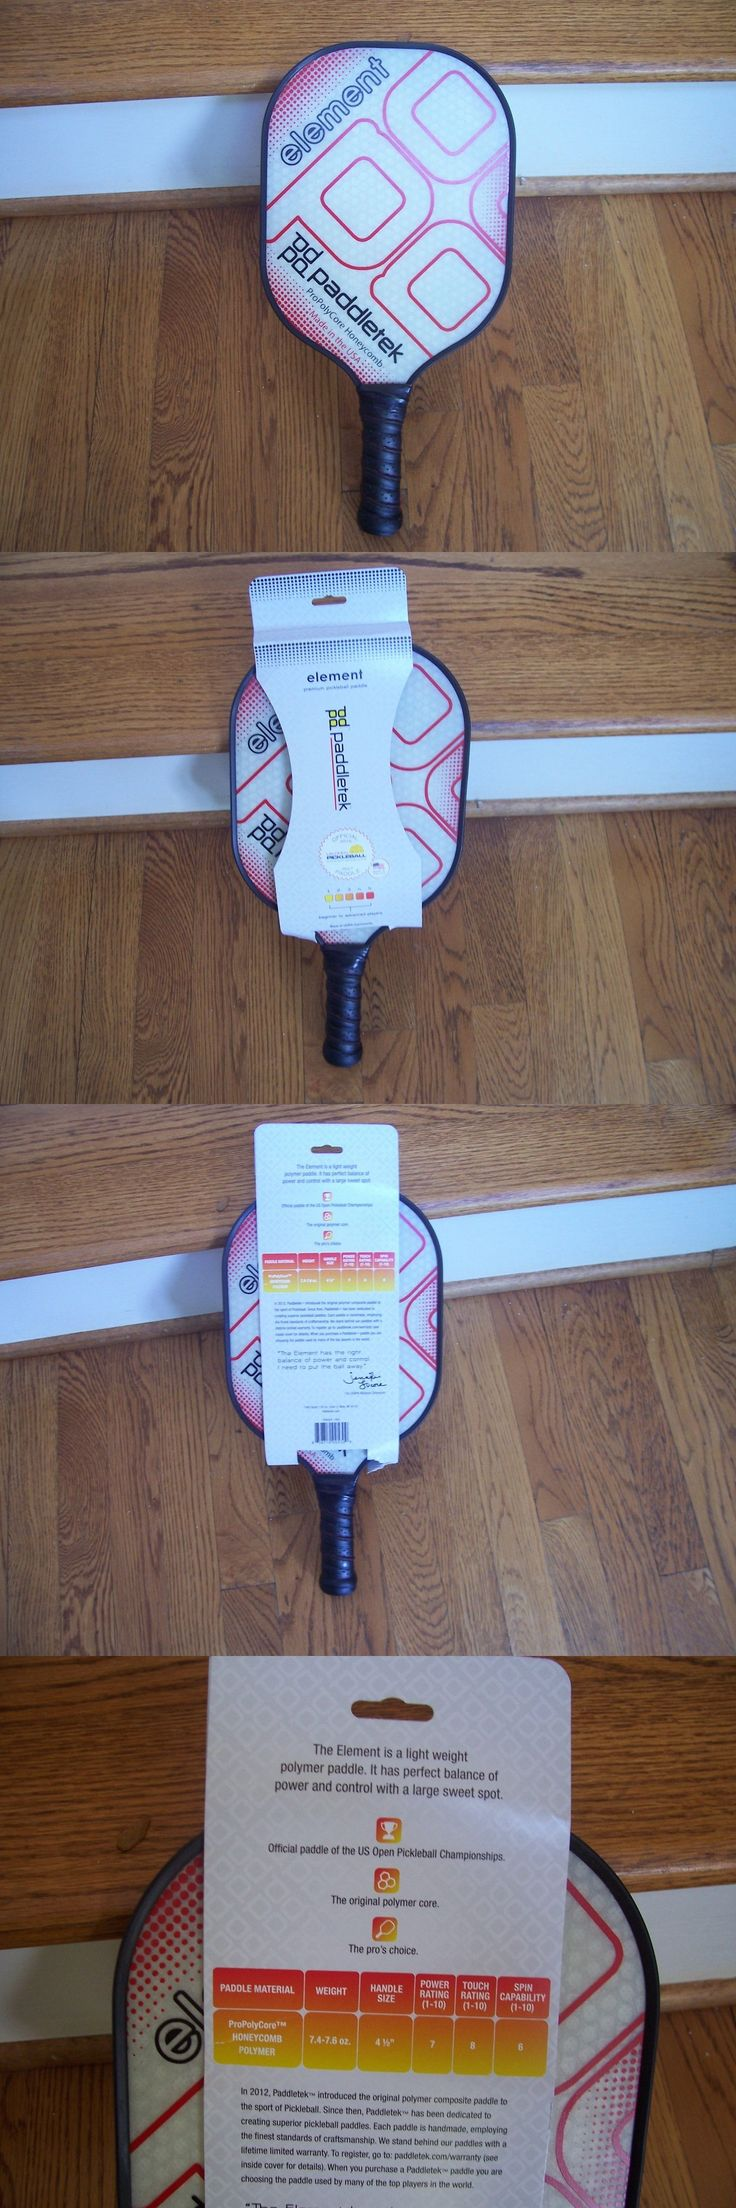 Other Tennis and Racquet Sports 159135: Paddletek Element Pickleball Paddle-Red -> BUY IT NOW ONLY: $69.99 on eBay!